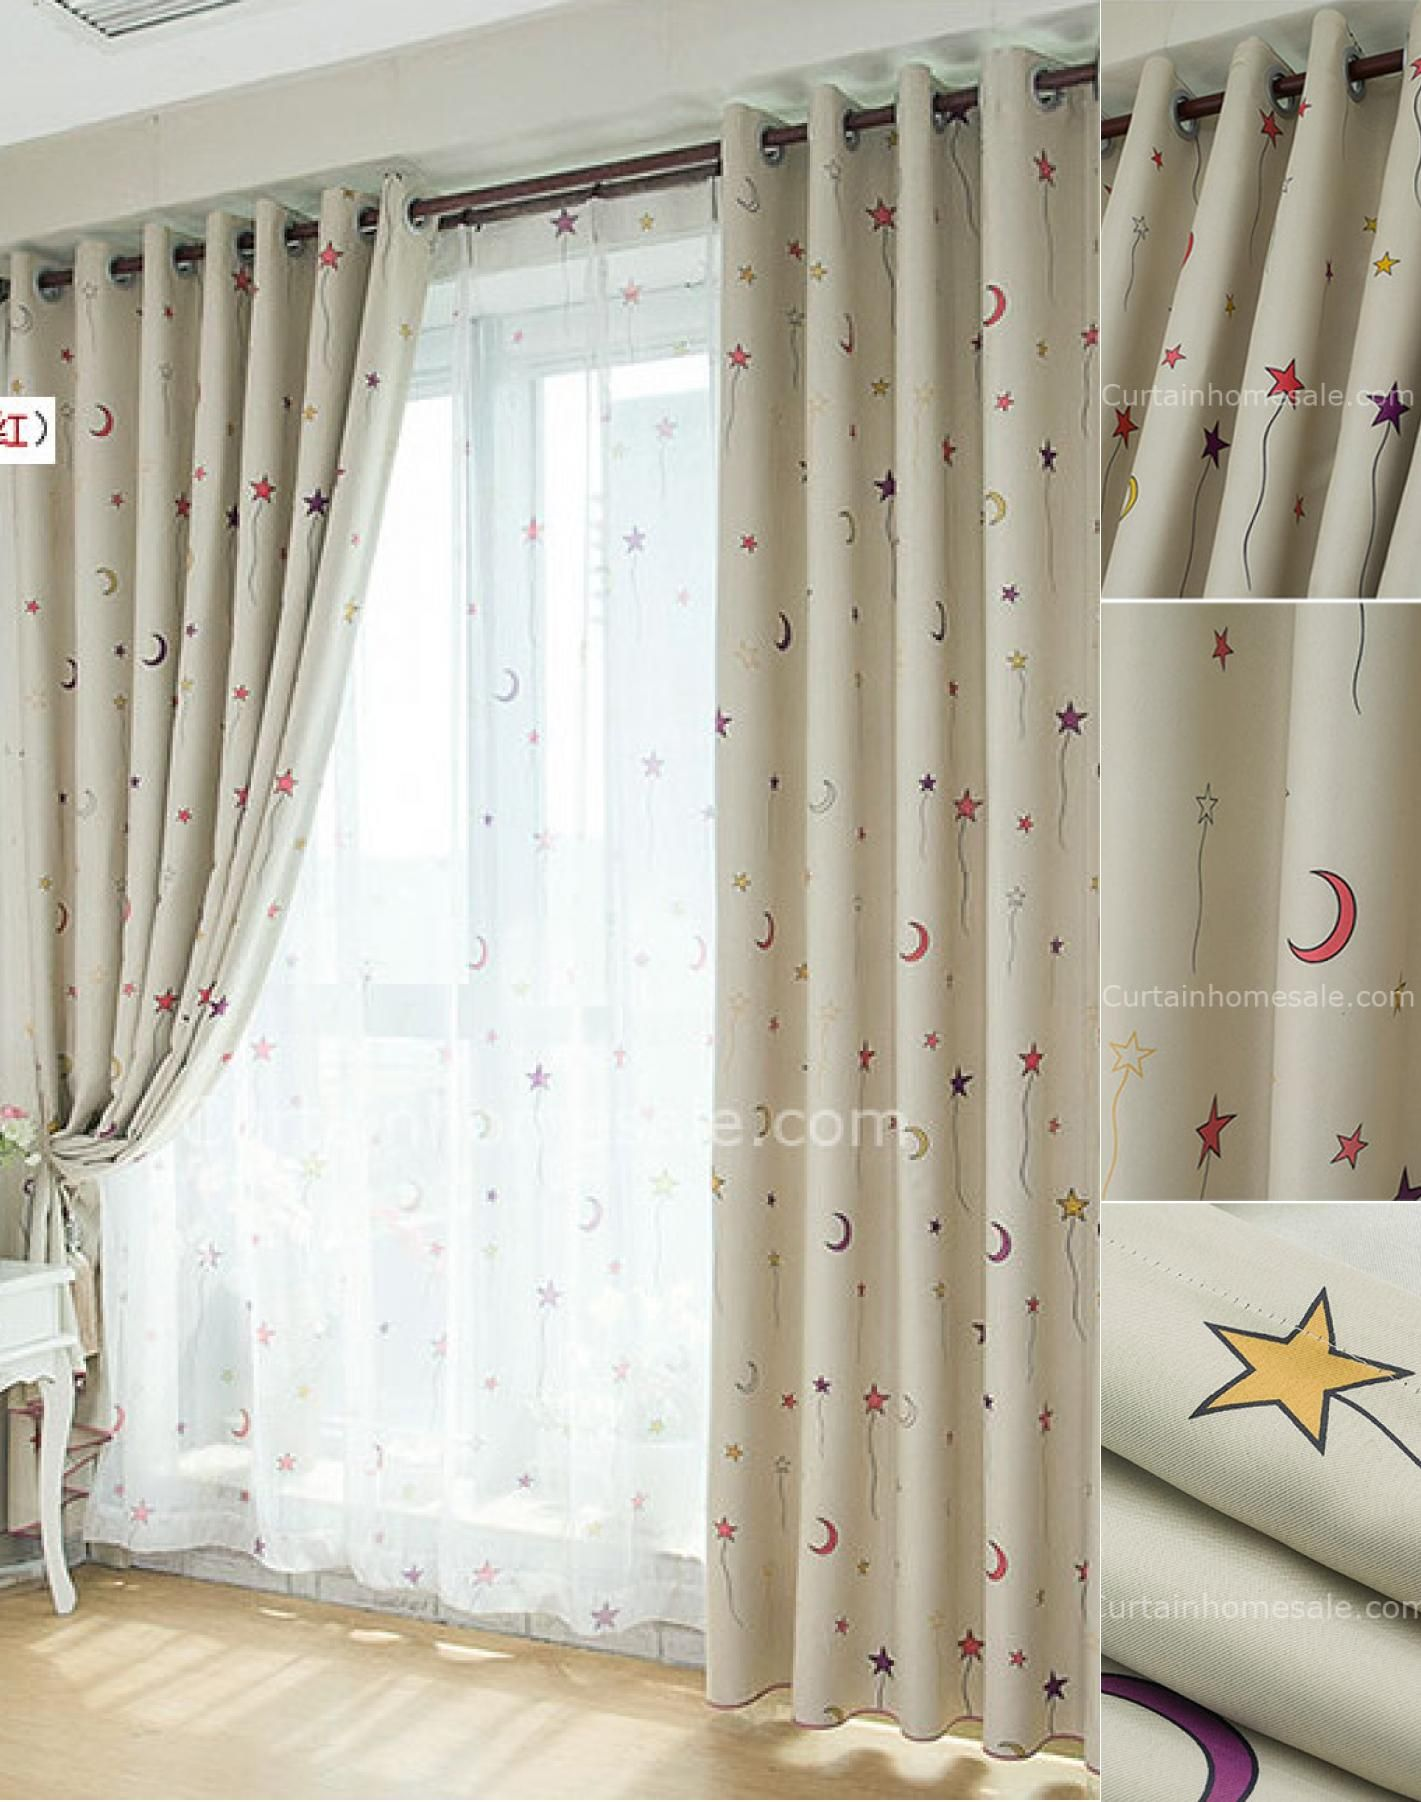 Bohemian Room Darkening Stars Fiber Children Girlsroom Darkening Curtains Baby Room Curtains Childrens Blackout Curtains Cool Curtains